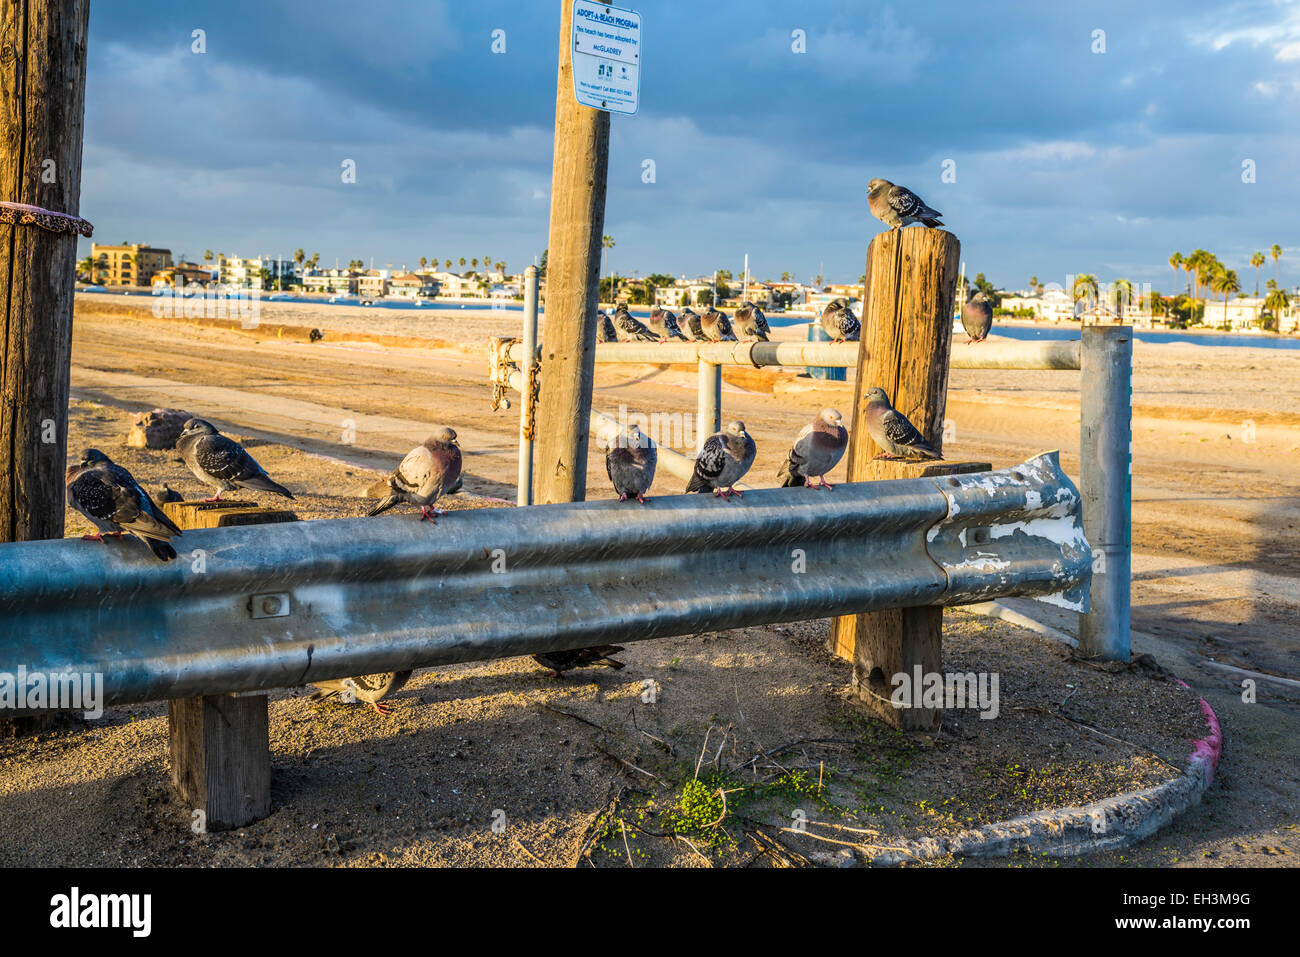 Pigeon Images Stock Photos Amp Pigeon Images Stock Images